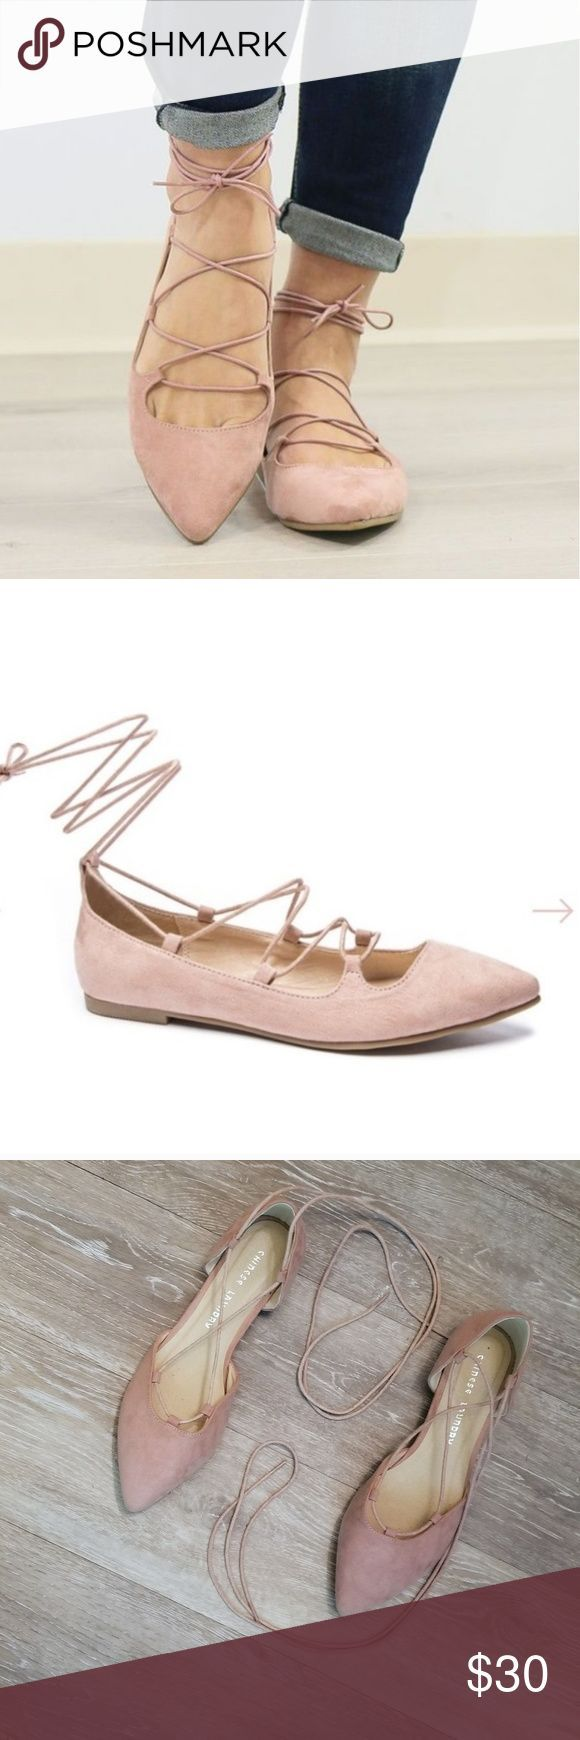 Nwot Chinese laundry pink lace up ballet flats 9 Nwot Chinese laundry pink lace ...  ... Ballet Flats